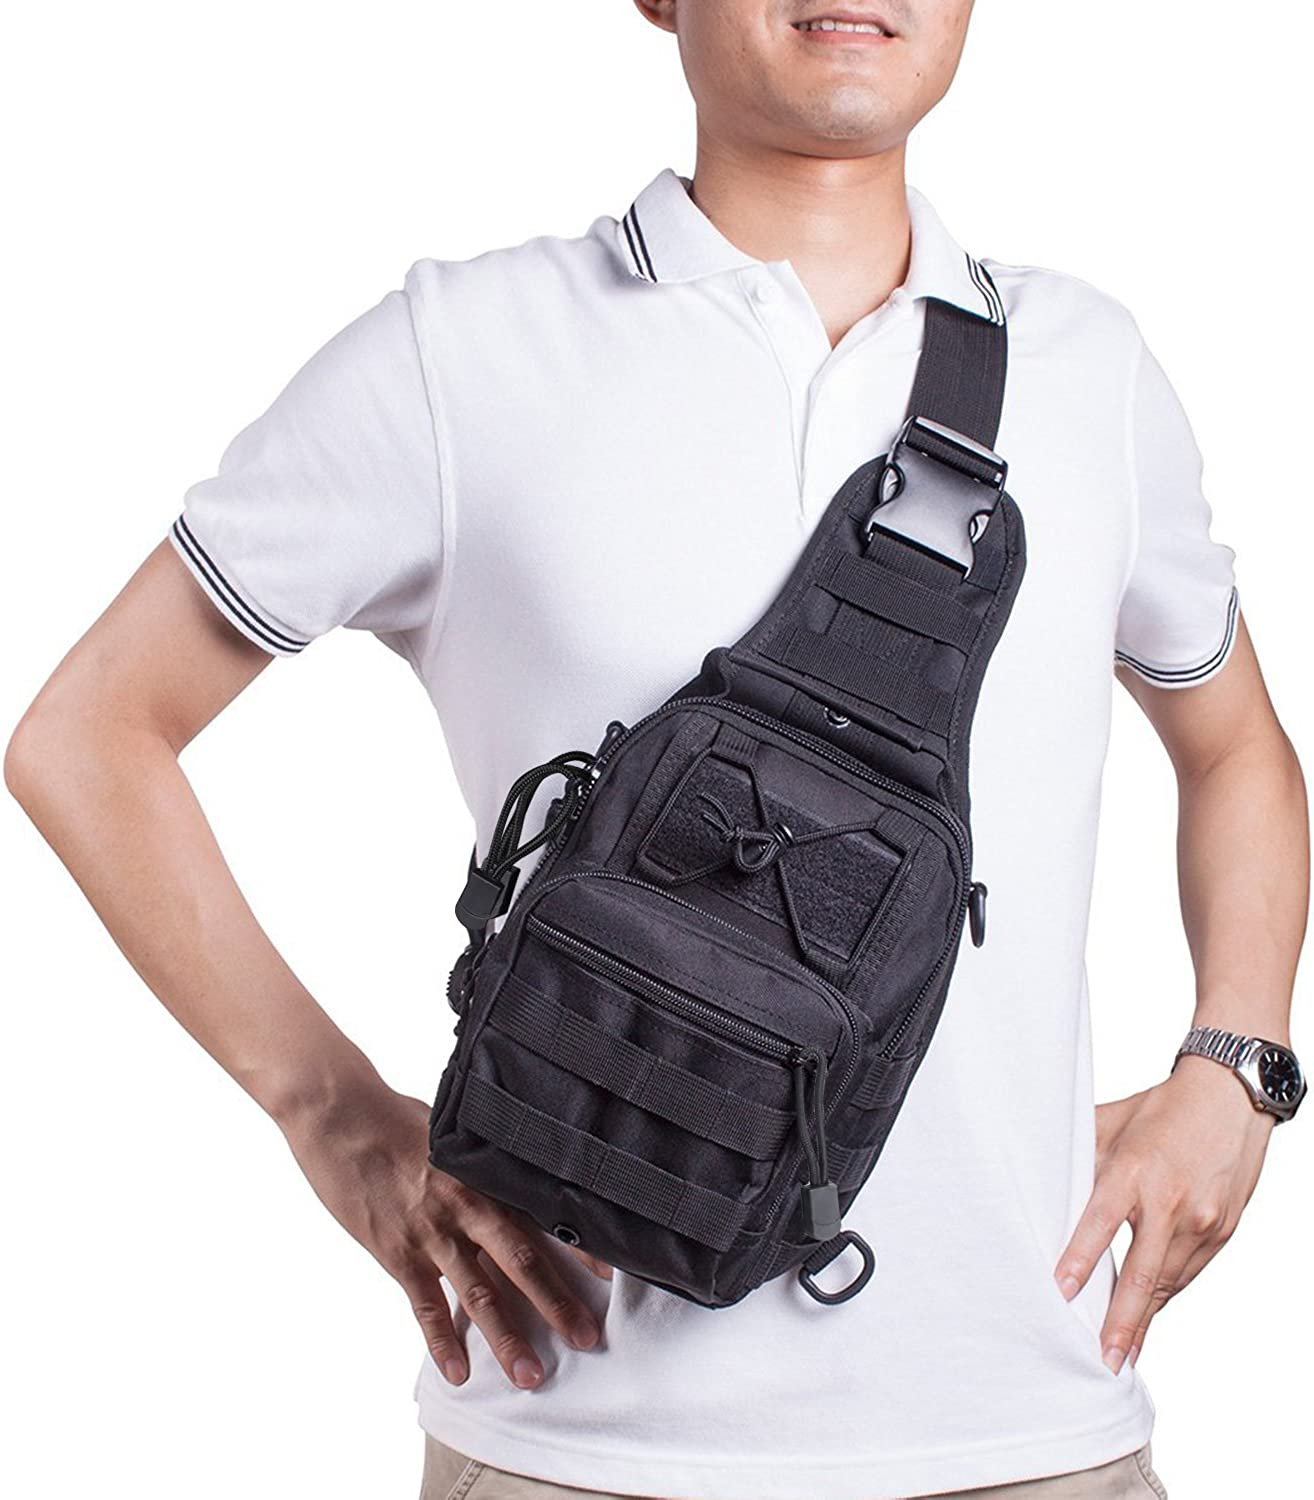 Prospo Tactical Sling Bag Pack Military Molle EDC Chest One Strap Daypack Outdoor Black New